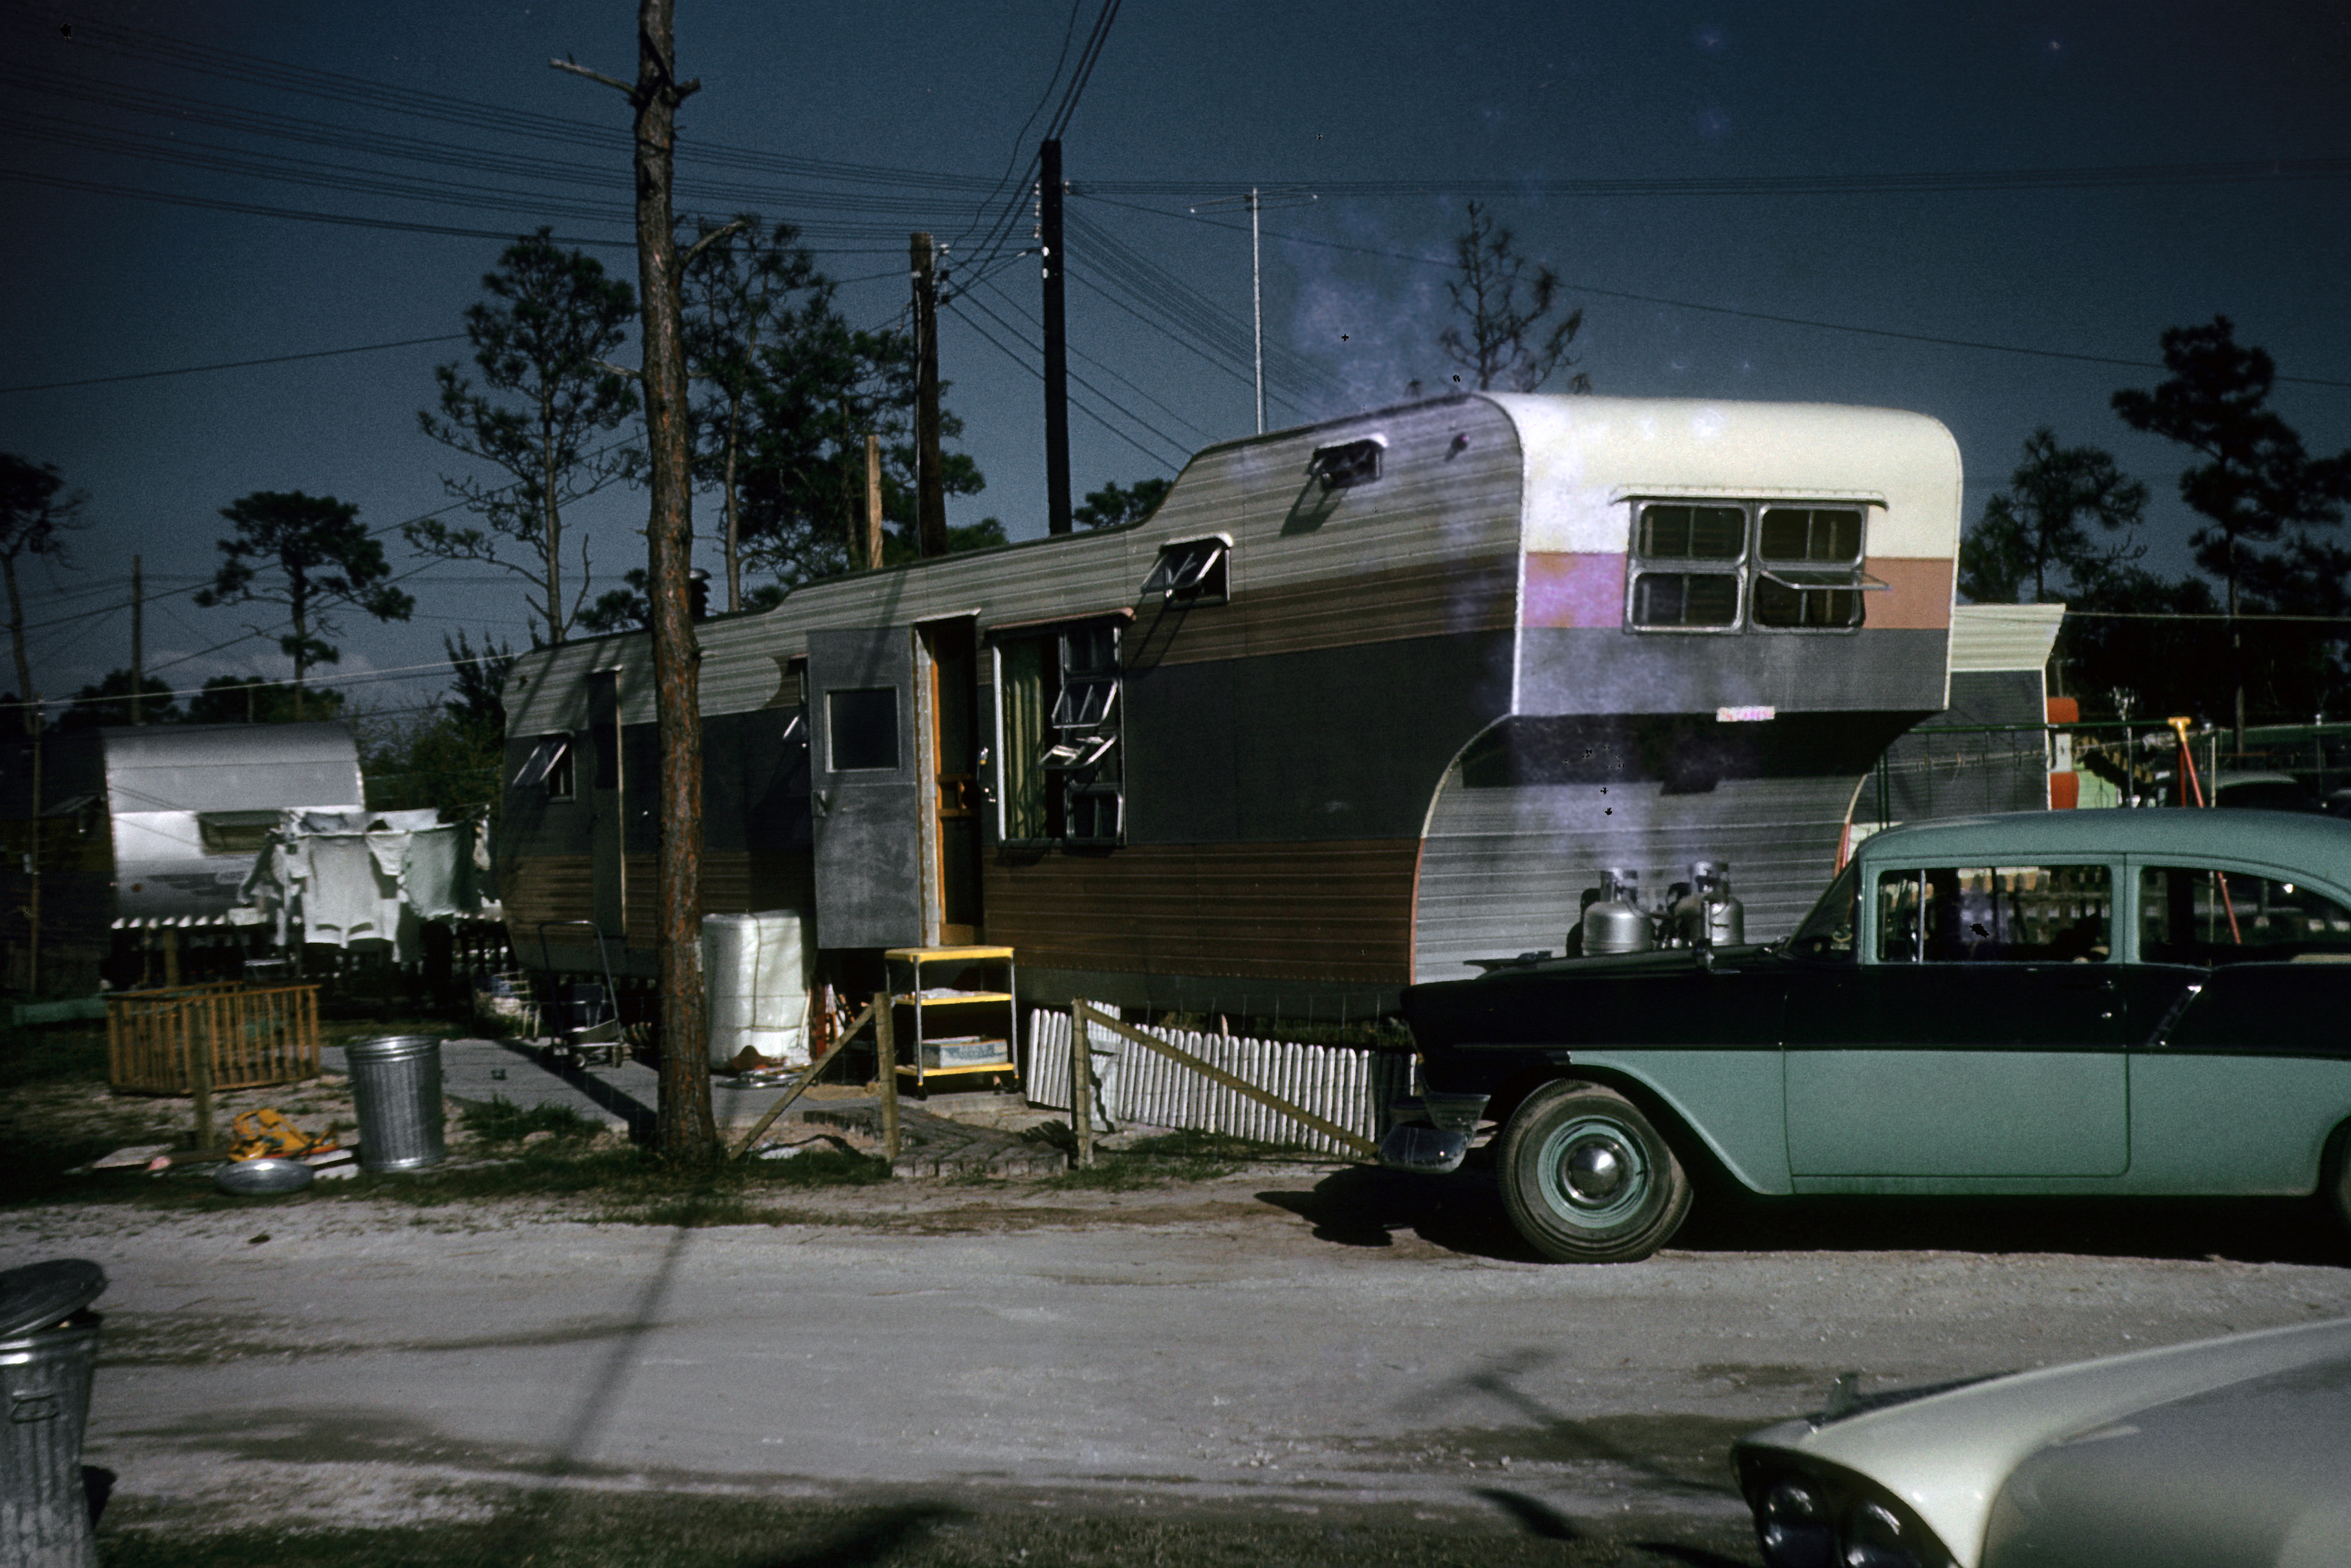 File:1958 photo of Zimmer trailer in a trailer park in Tampa ... on bentley mobile home, brown mobile home, kelly mobile home, 1980 mobile home, lamborghini mobile home, toyota mobile home, 1960s mobile home, volkswagen mobile home, smart mobile home, mini mobile home, 1971 mobile home, nelson mobile home, graham mobile home, white mobile home, bmw mobile home, anderson mobile home, tiffany mobile home, detroiter mobile home, ford mobile home, spartan mobile home,